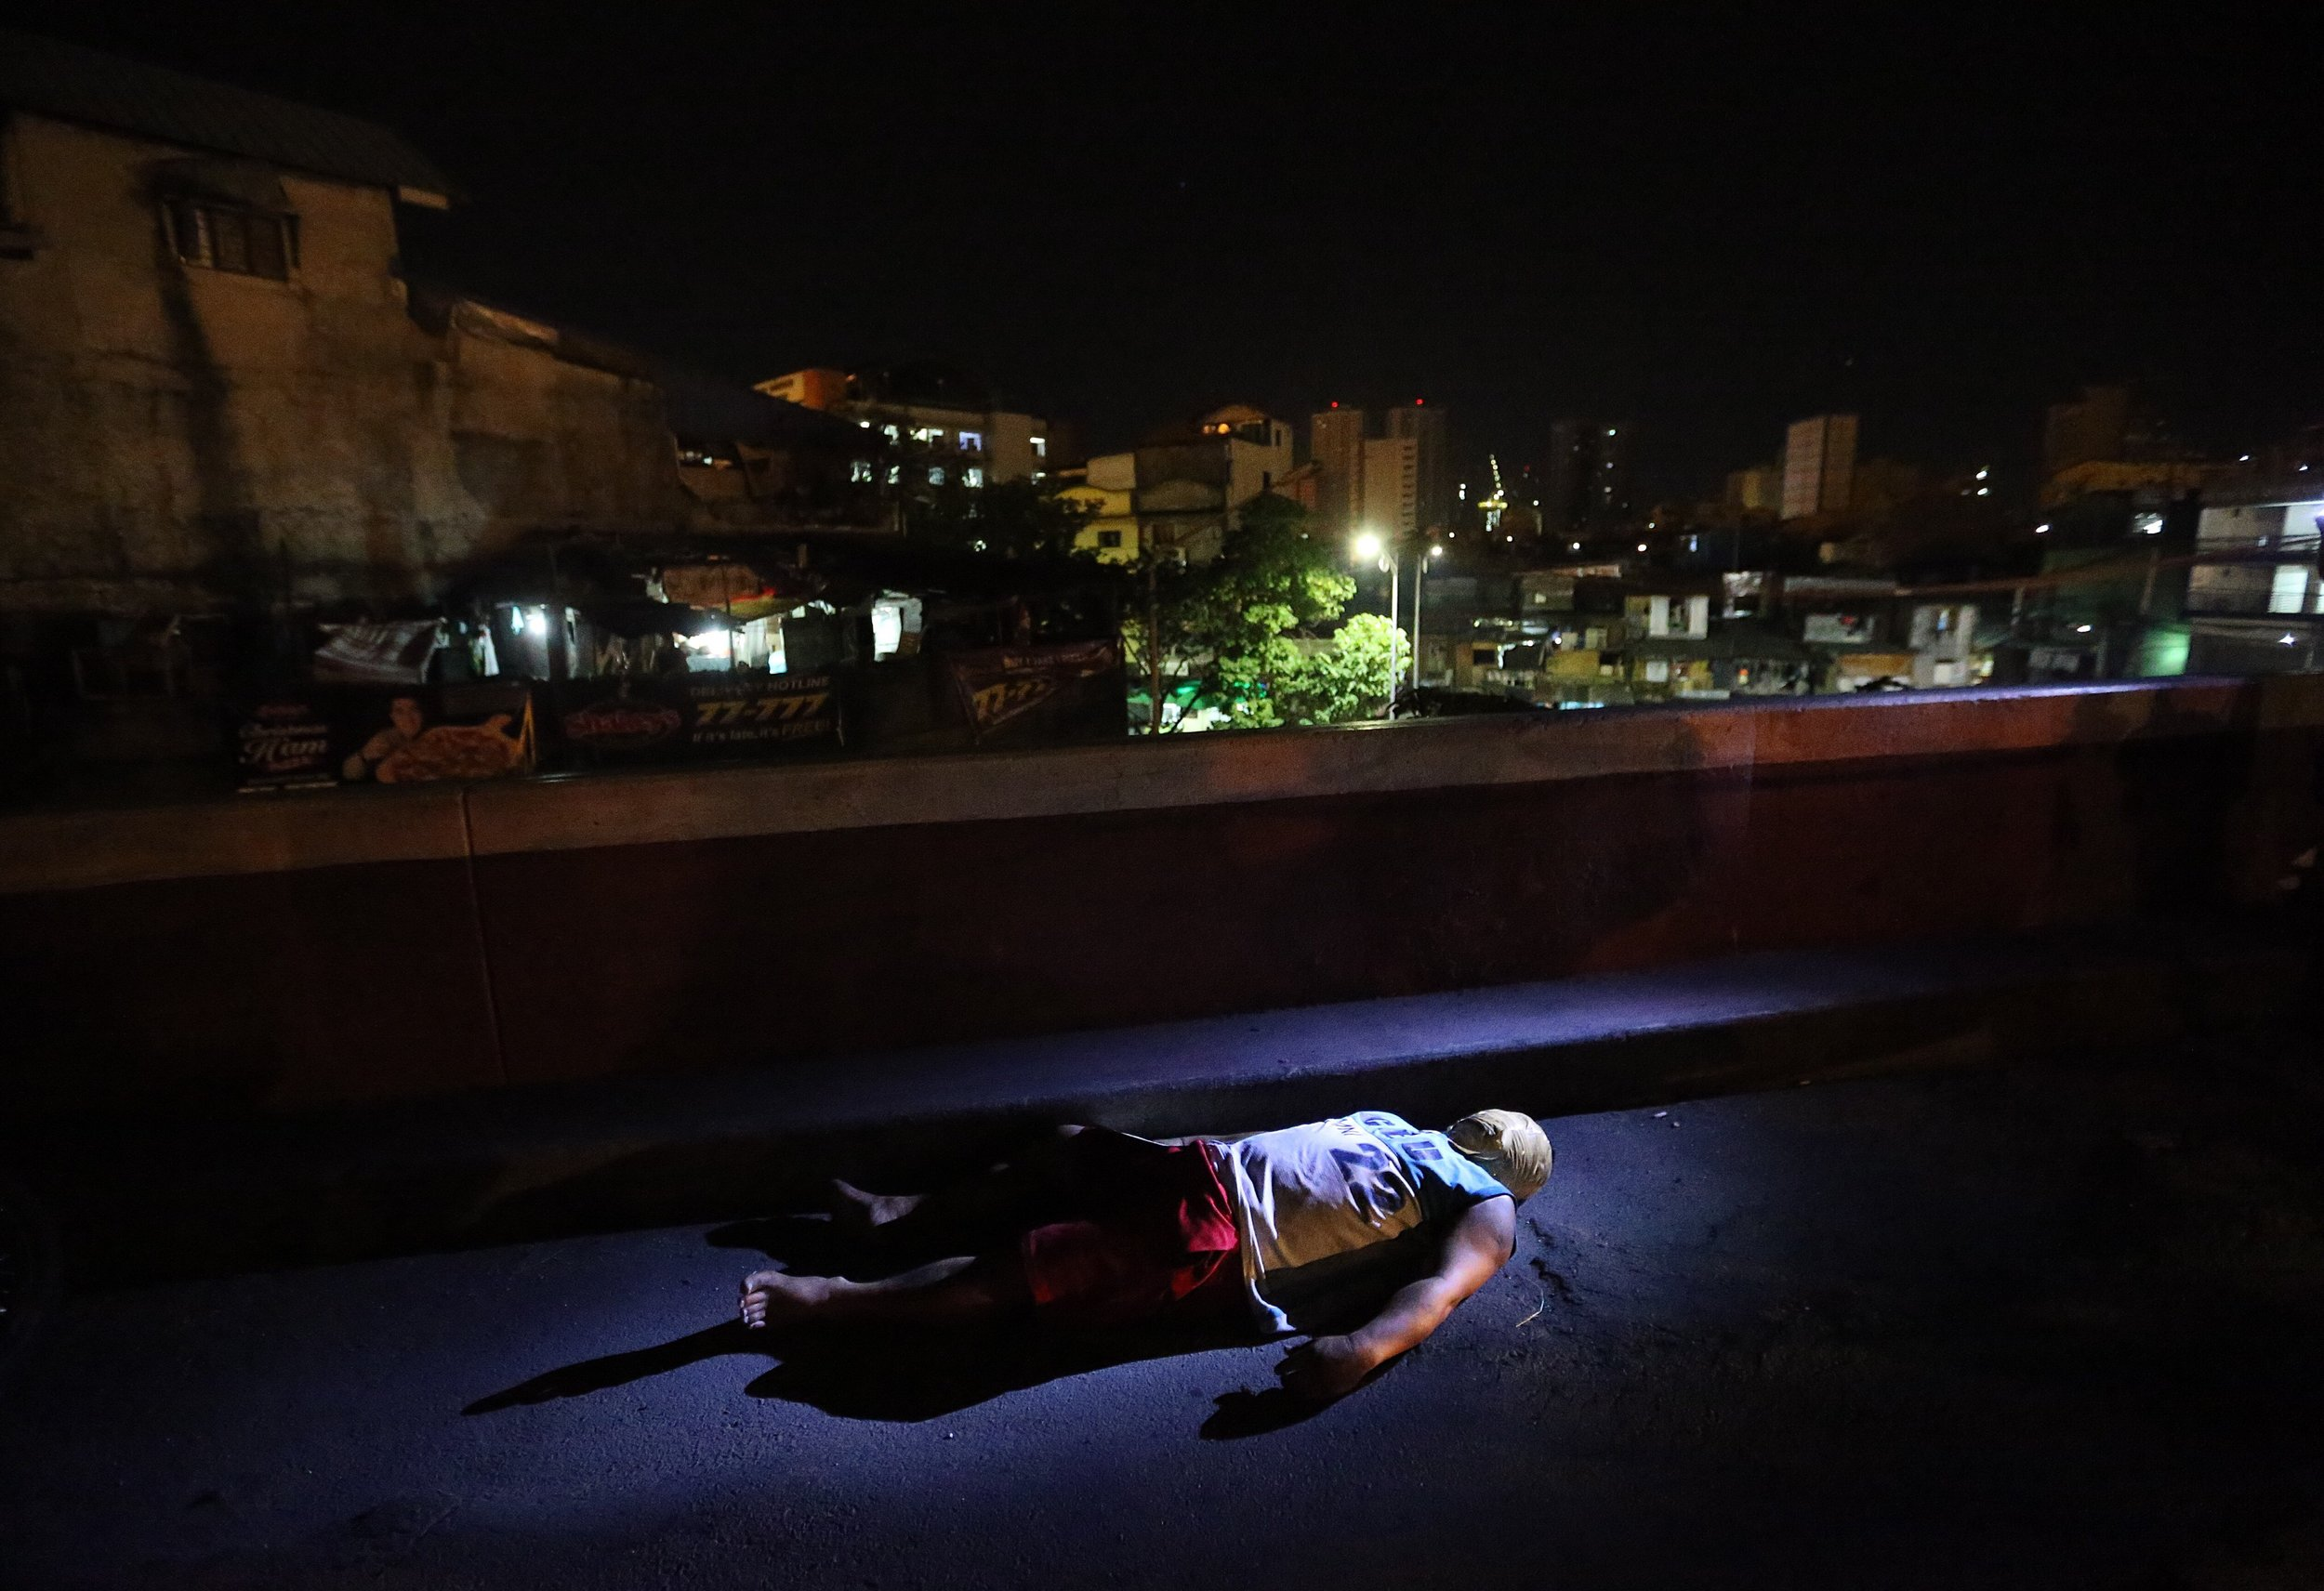 """On November 22, 2016, yet another victim of summary execution was found at Delpan Bridge, Tondo, Manila. His face was covered in packaging tape, while a cardboard sign left beside his body wrote """"drug pusher ako, huwag tularan."""" (""""I am a drug pusher, do not tolerate me."""") Minutes into the crime scene, his family arrived to identify him as Rene Desierto."""